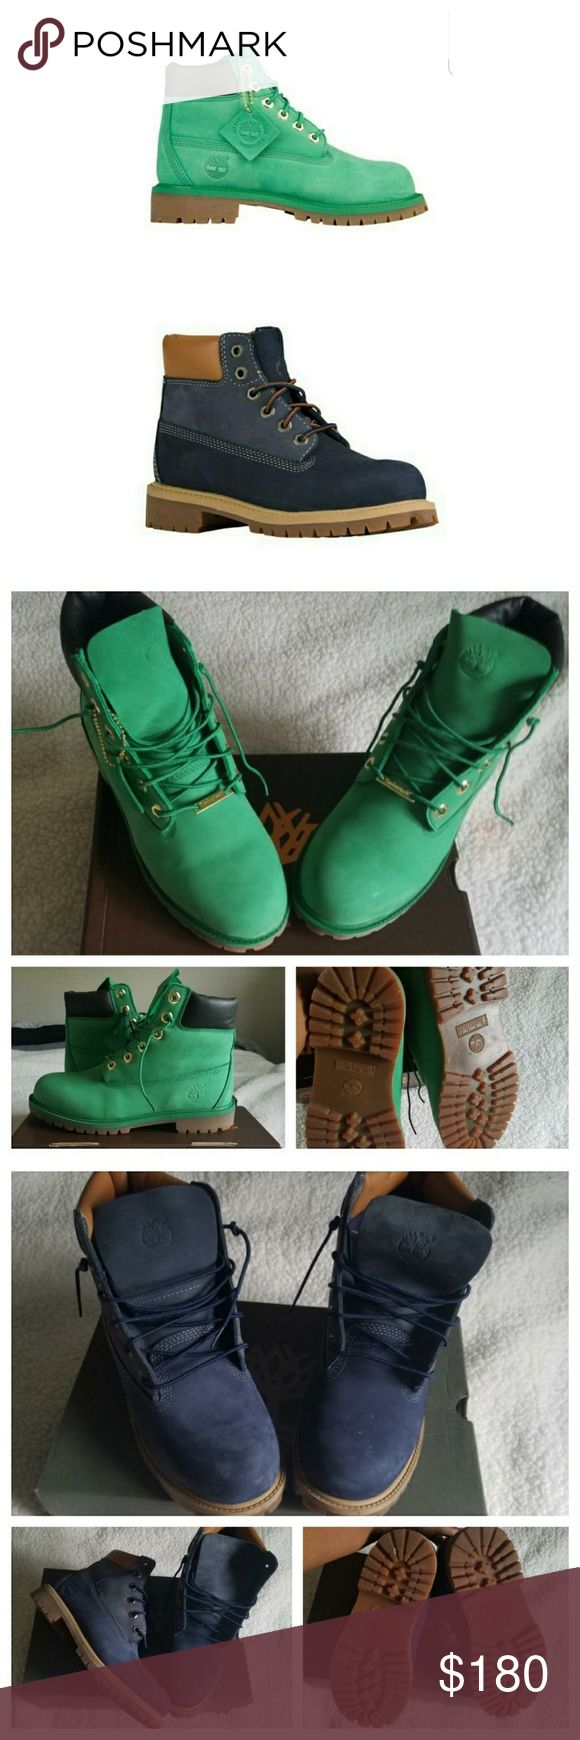 Timberland Boots Youth Size 6.5 which is equivalent to a women's size 7.5, 8 or 8.5. Limited Edition Celtic green and two tone blue color. Excellent Used Condition! Boxes included if paying additional shipping rate. Price is for both pair! Same or next day shipping MONDAY THRU FRIDAY Timberland Shoes Boots